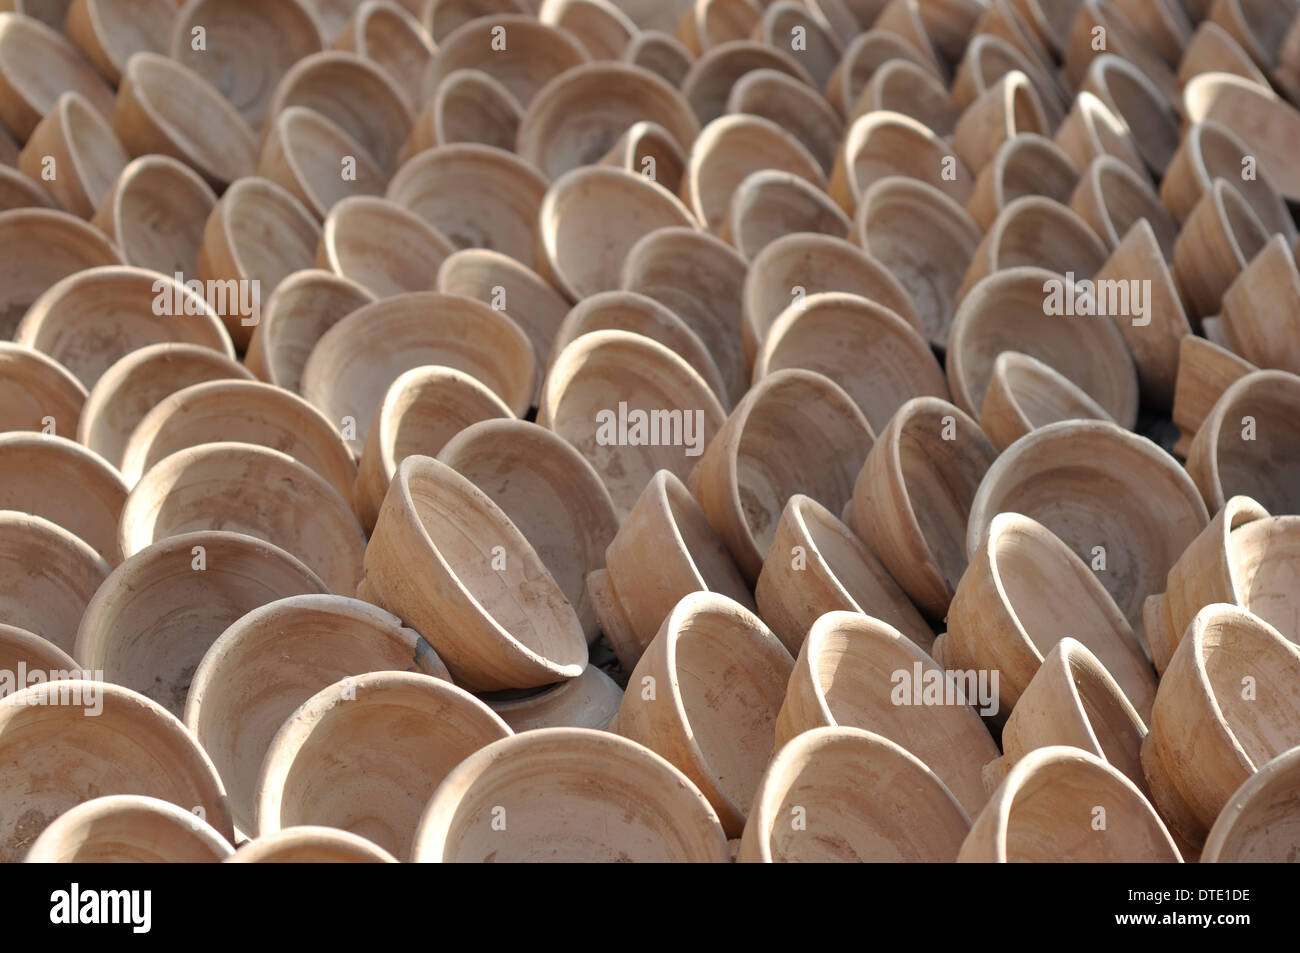 A selection of handmade pottery clay bowls, Marrakesh Morocco - Stock Image